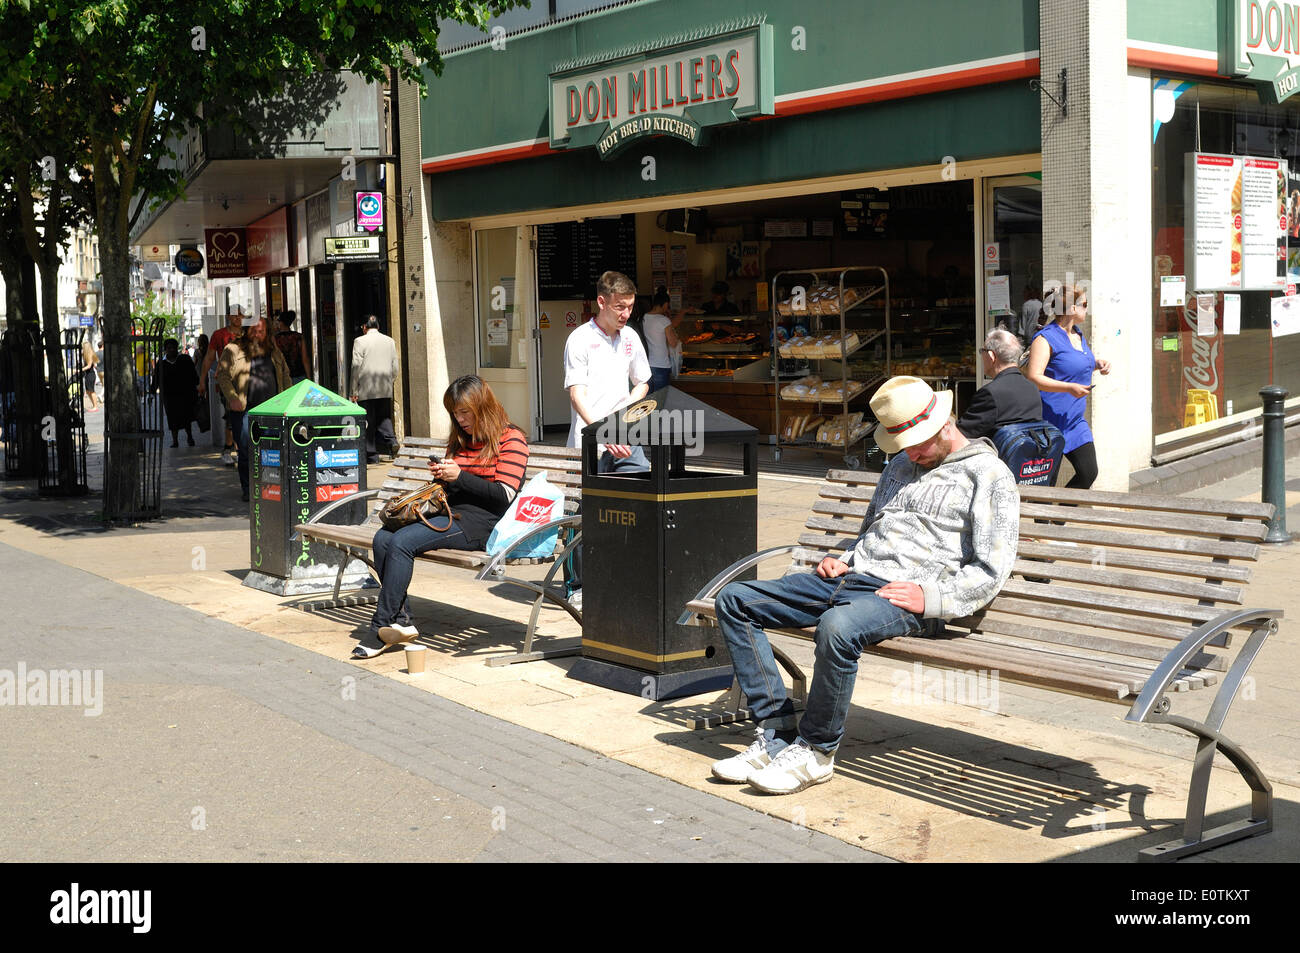 man snoozing on bench in Luton town centre - Stock Image